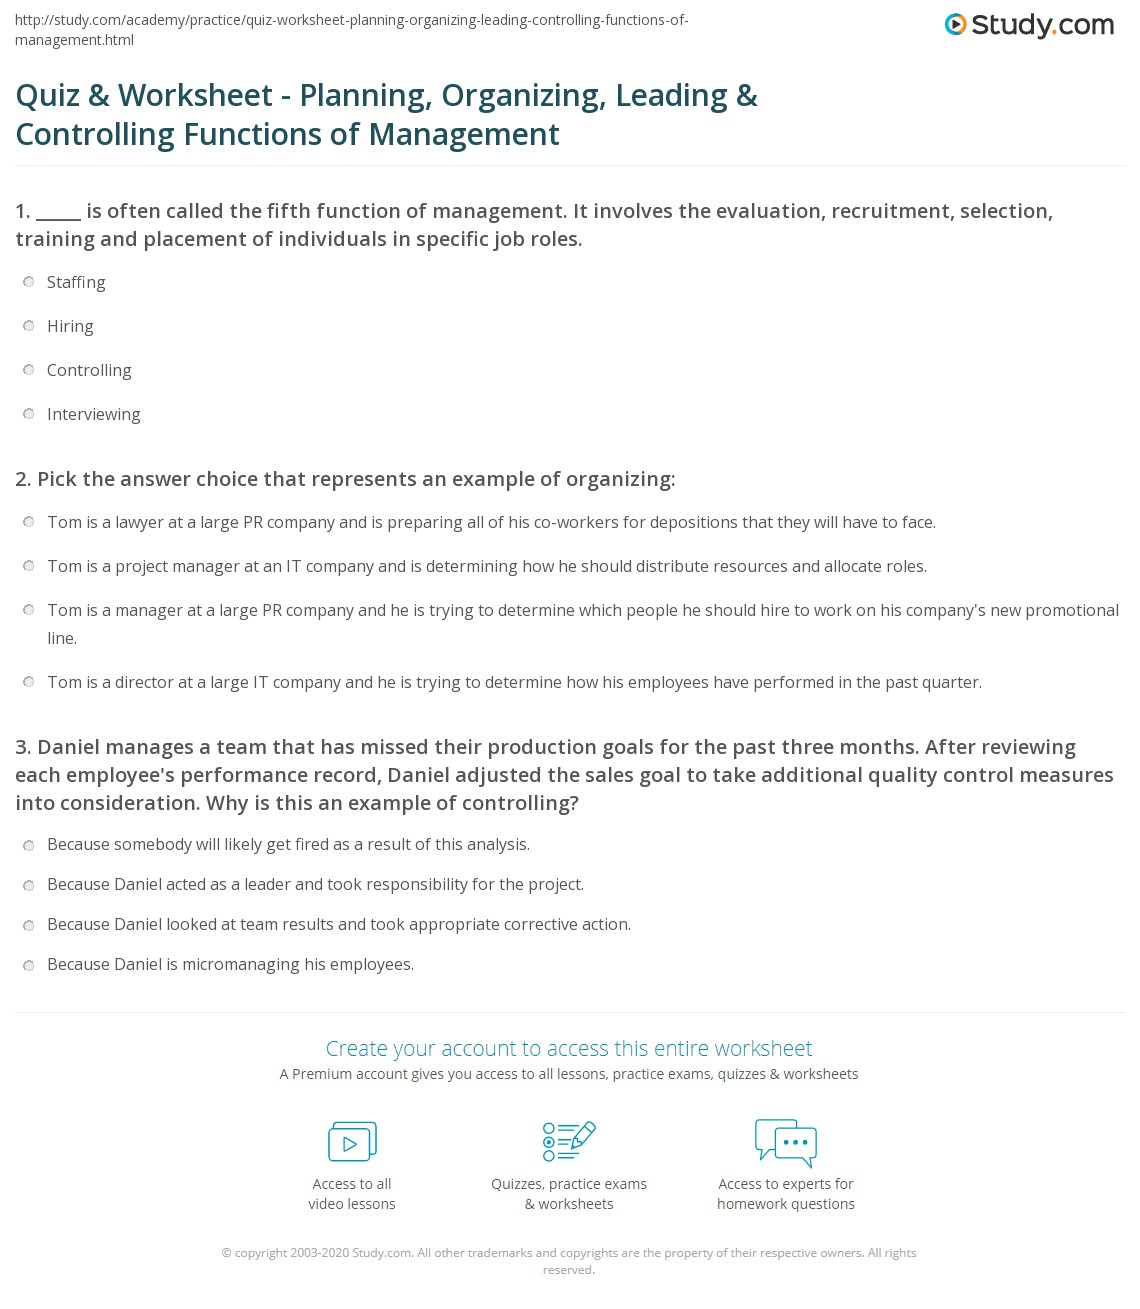 example of organizing function of management